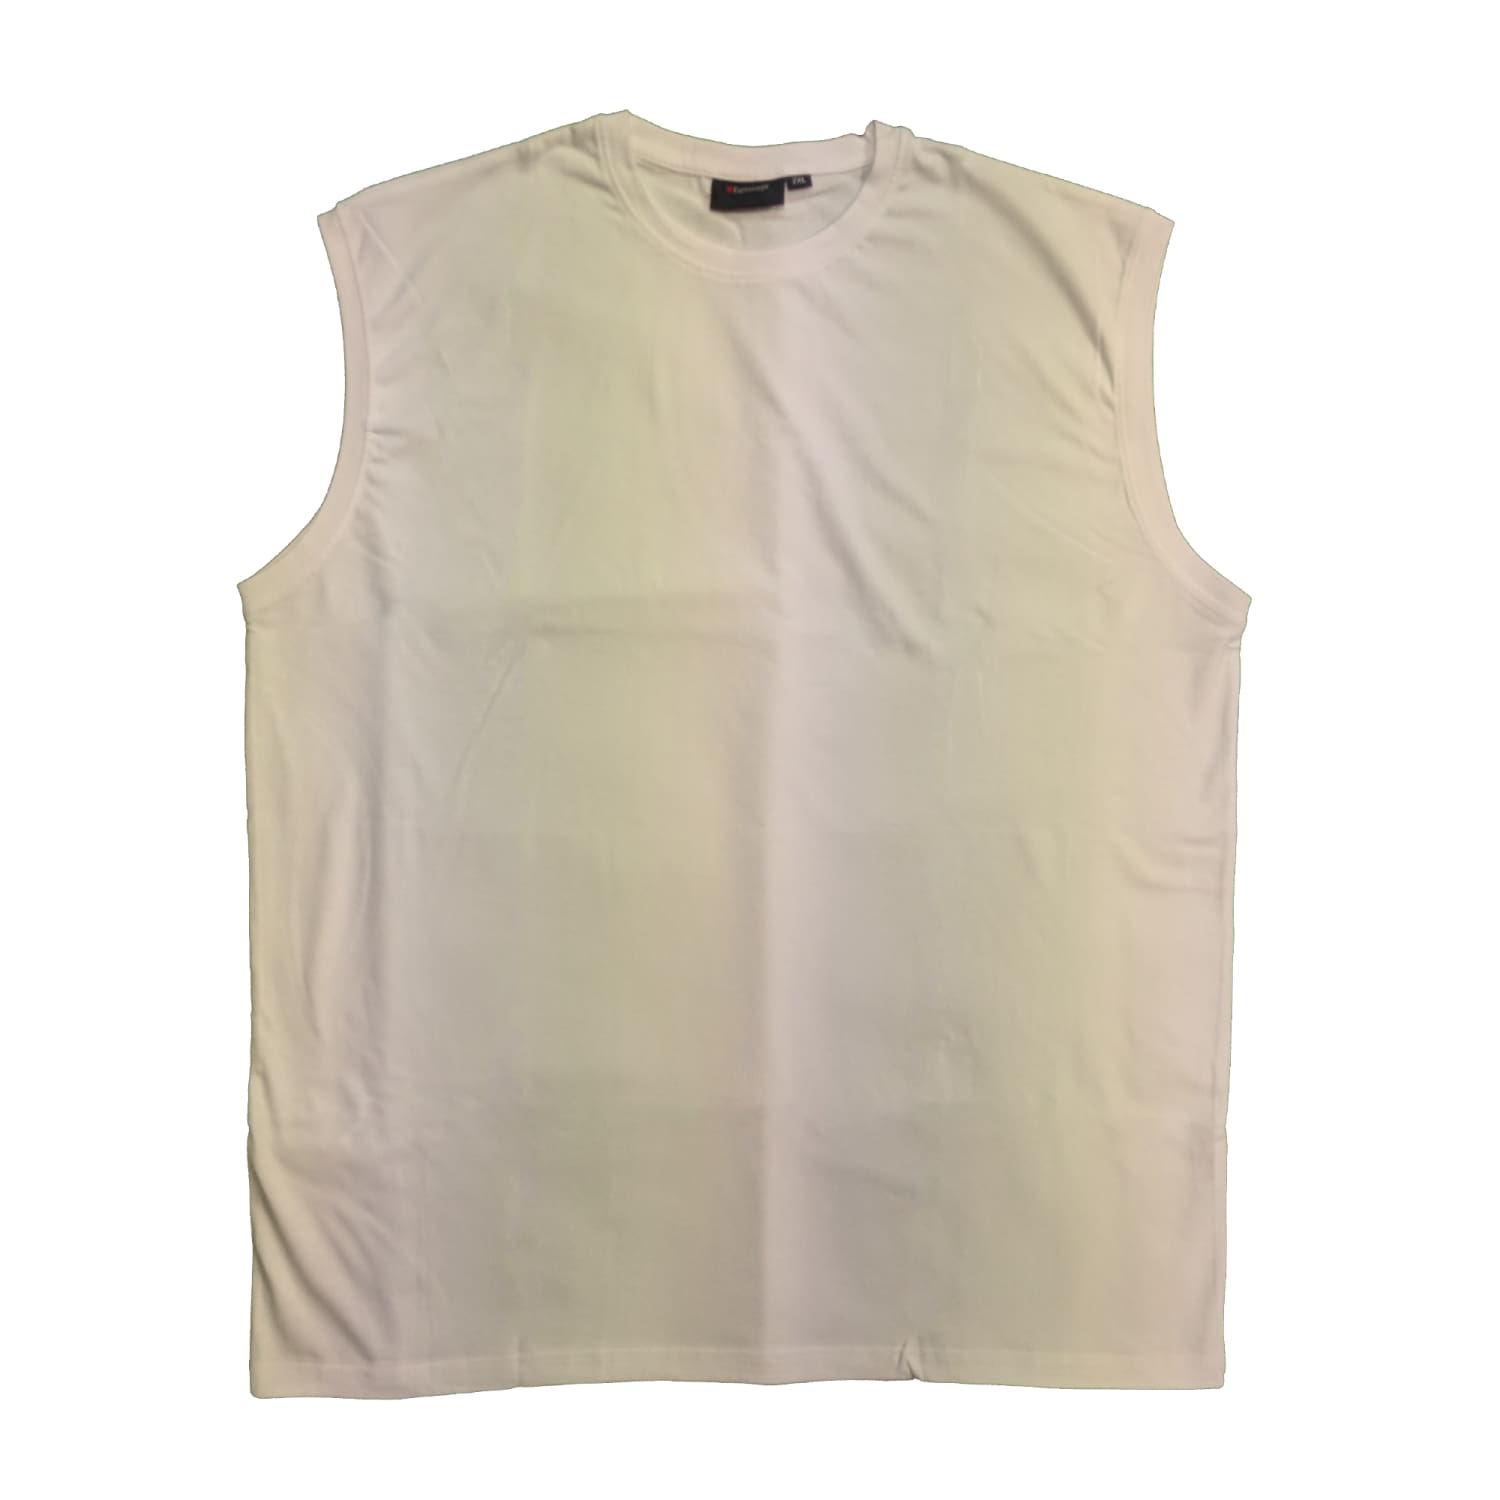 Espionage Sleeveless Tee - T113 - White 1